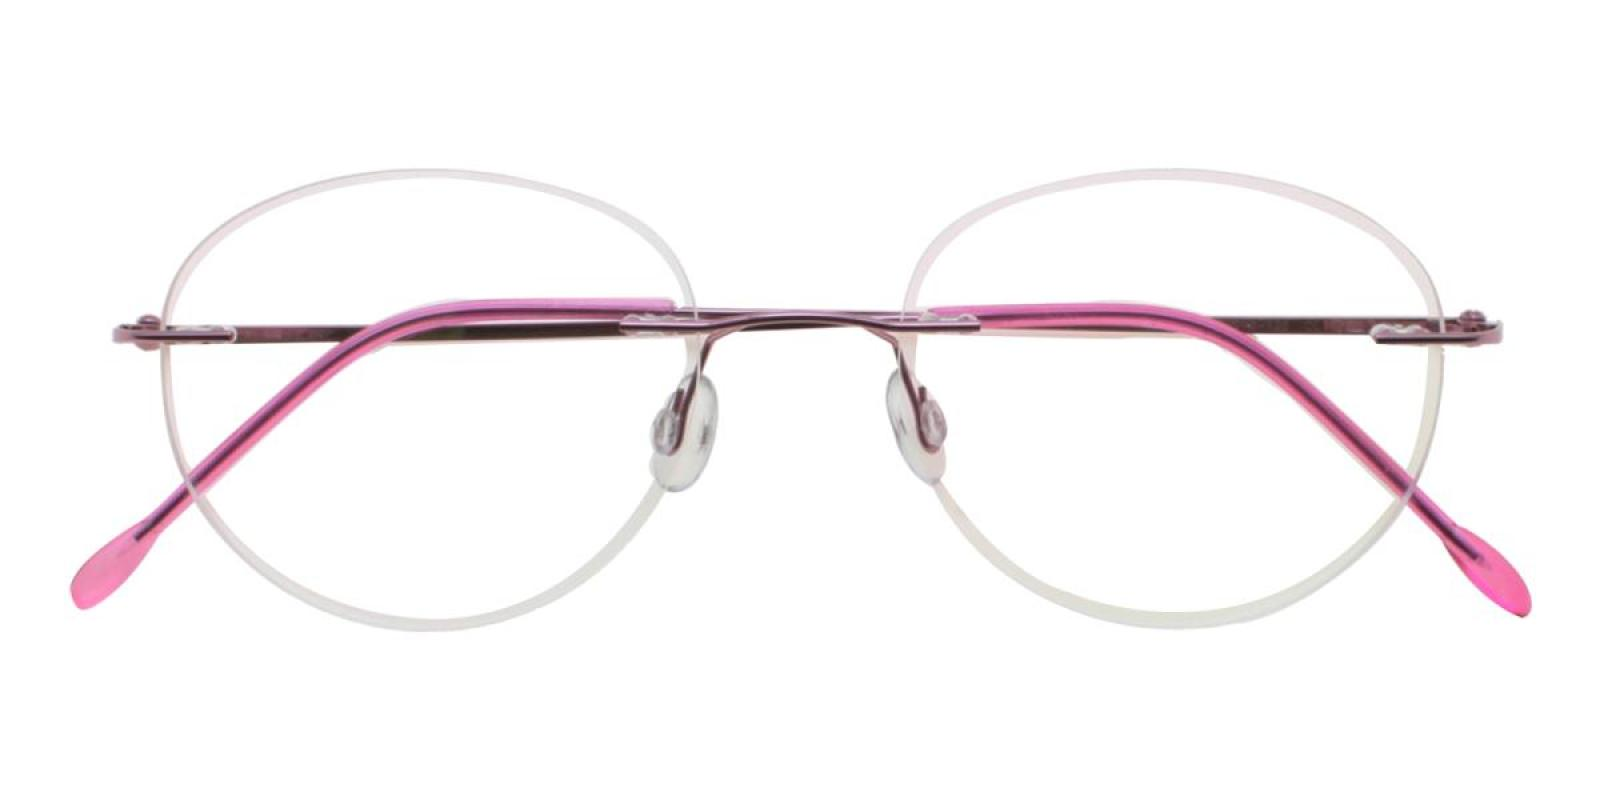 Ditto-Pink-Varieties-Metal-Eyeglasses-detail